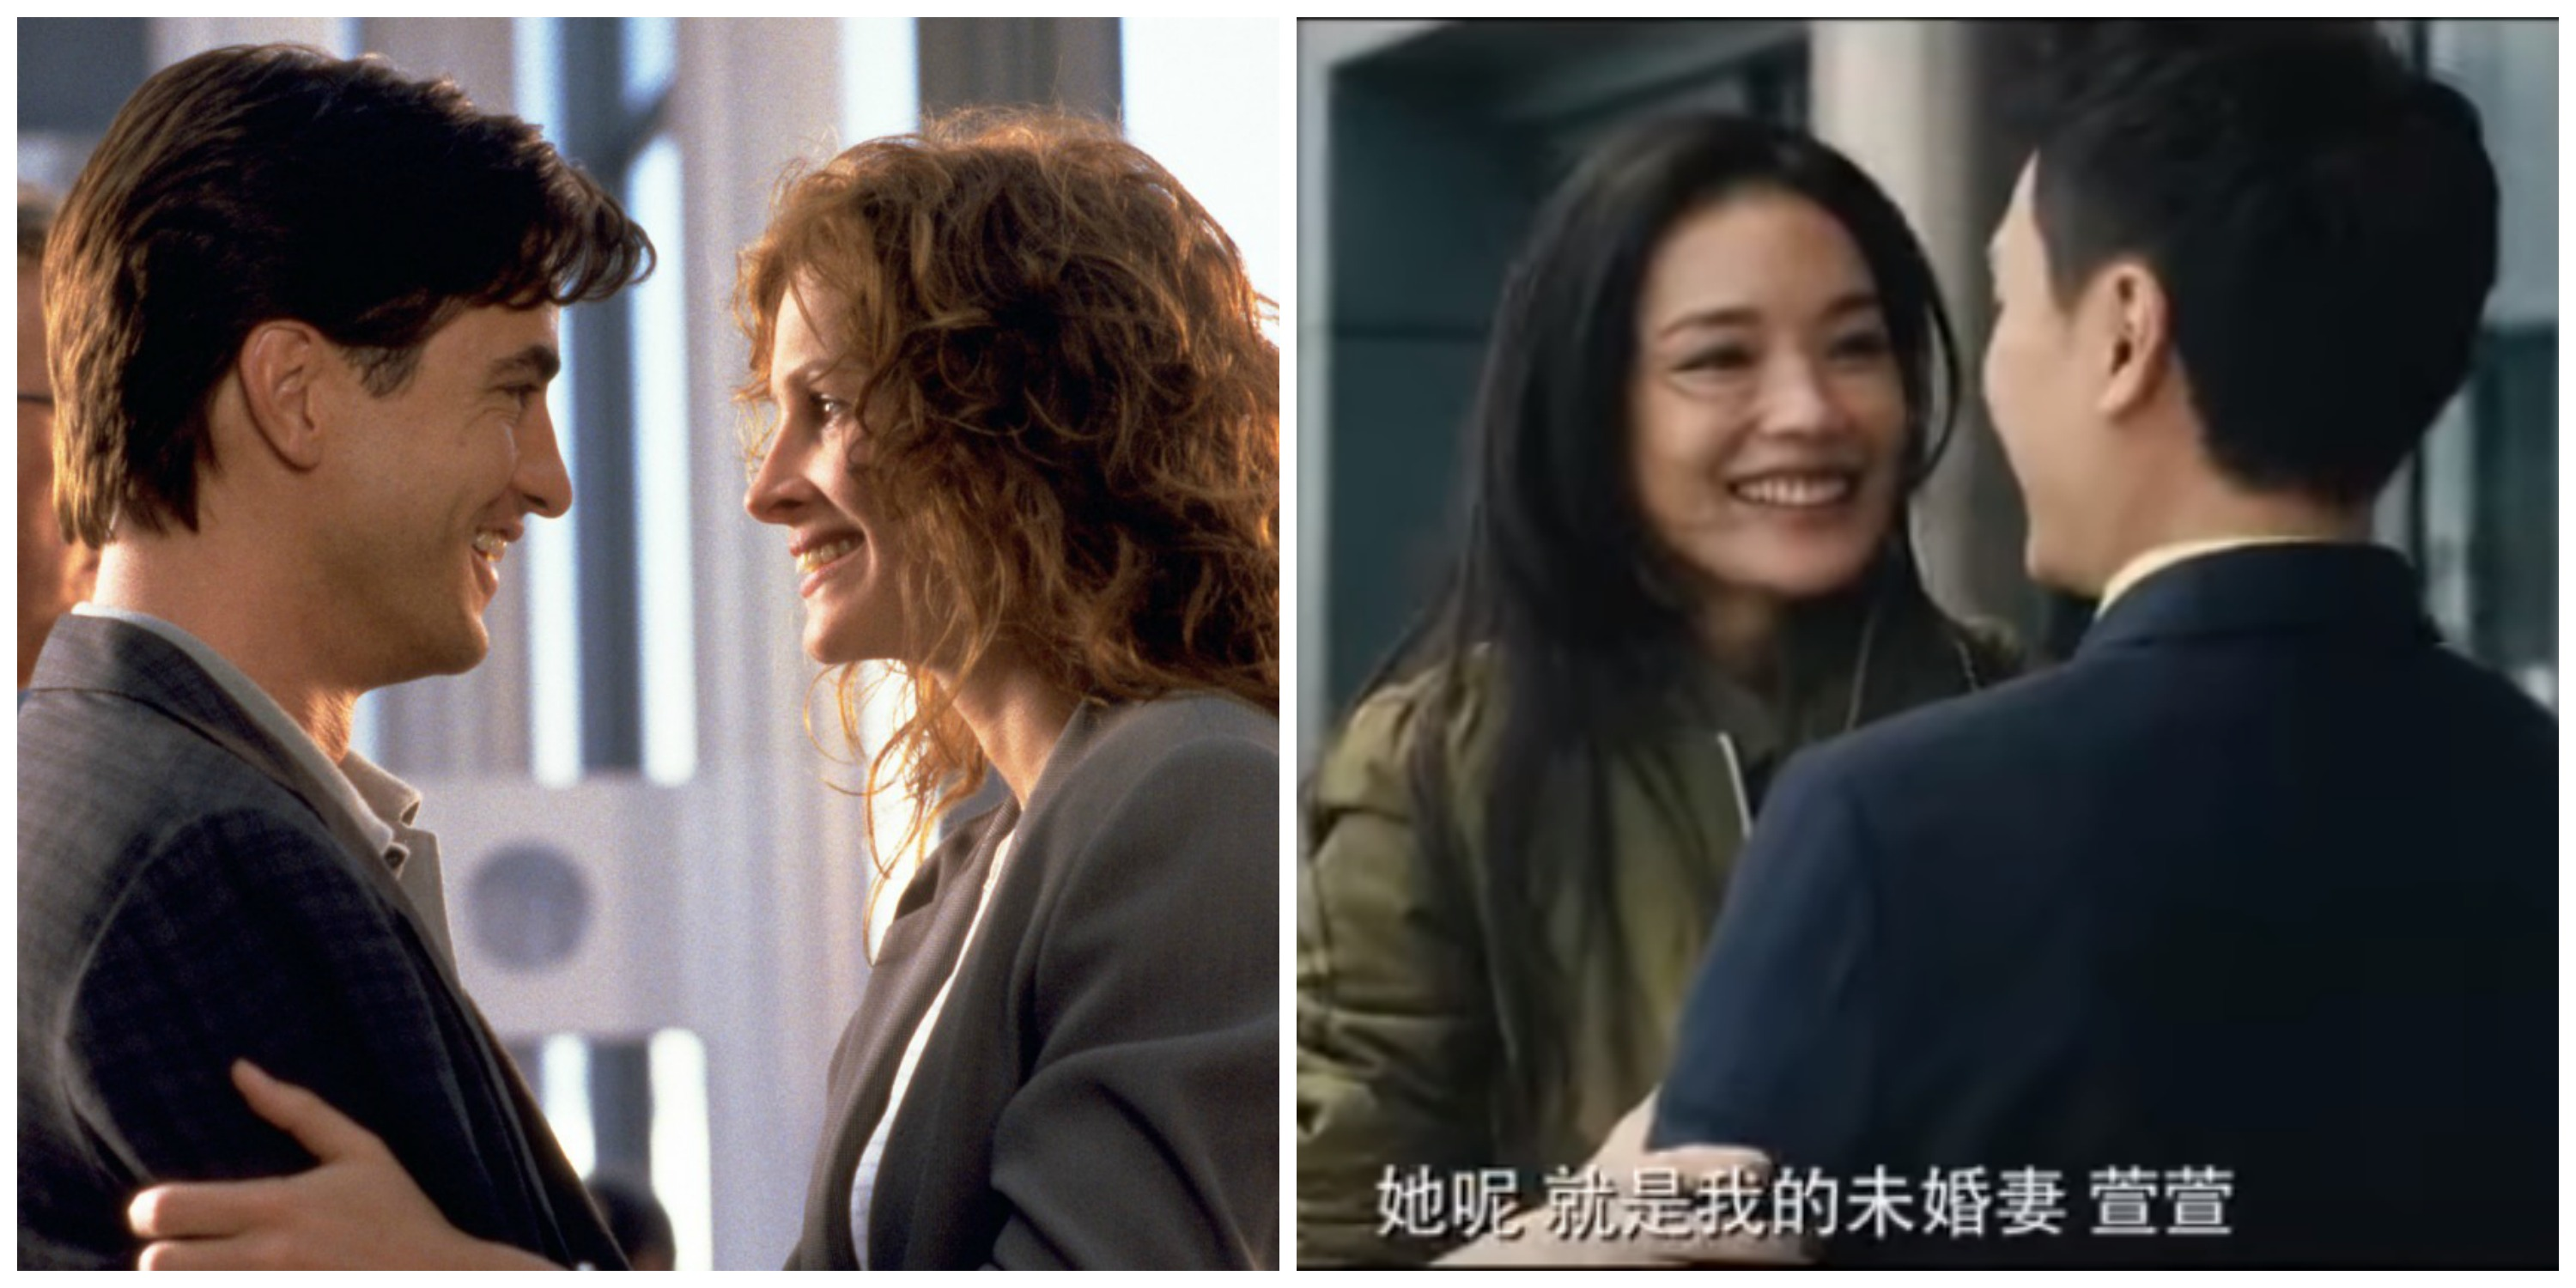 Chinese remake of 'My Best Friend's Wedding' is coming to